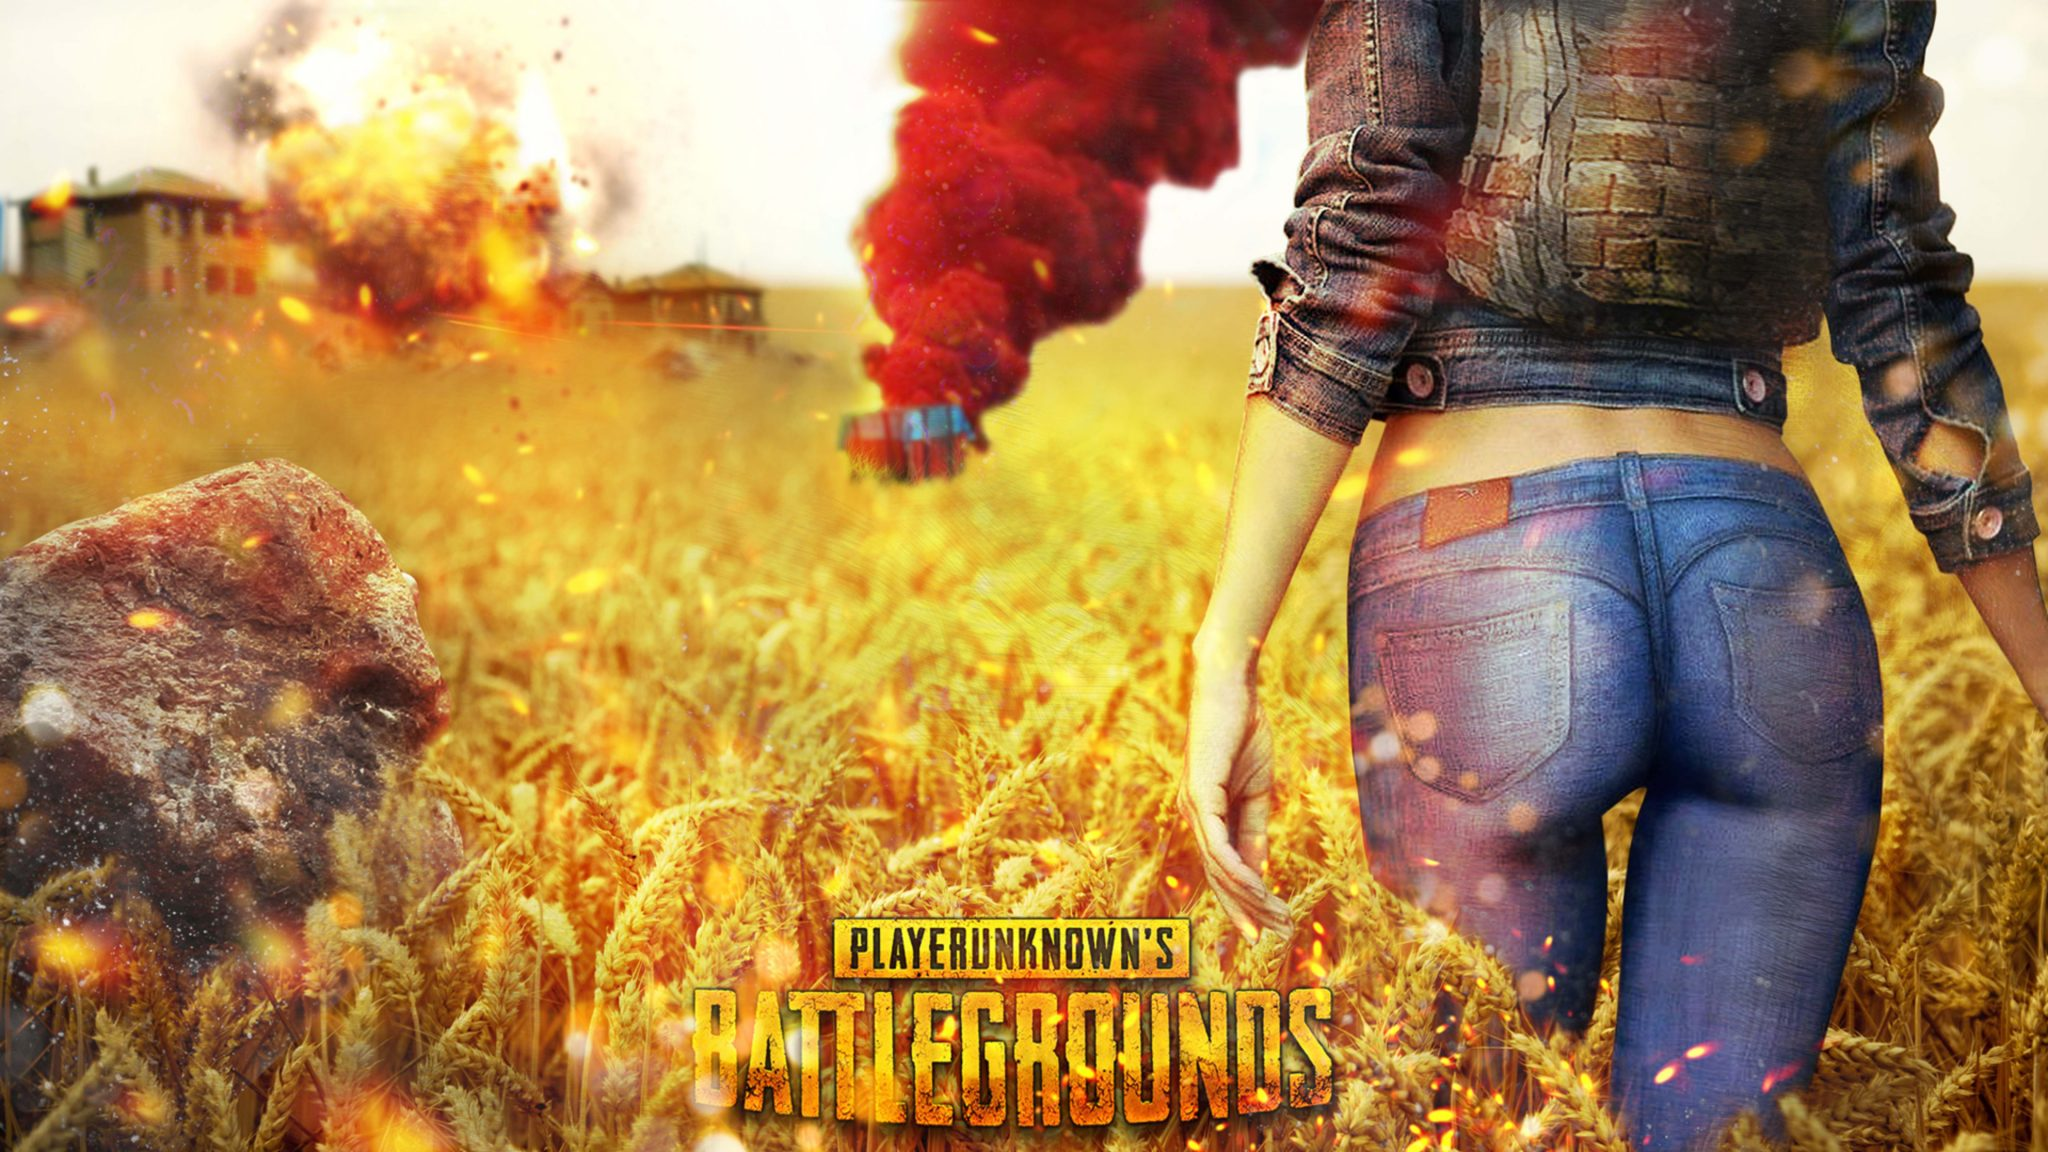 Pubg Sanhok Wallpaper 4k: Playerunknowns Battlegrounds PUBG Cover 4K Wallpaper